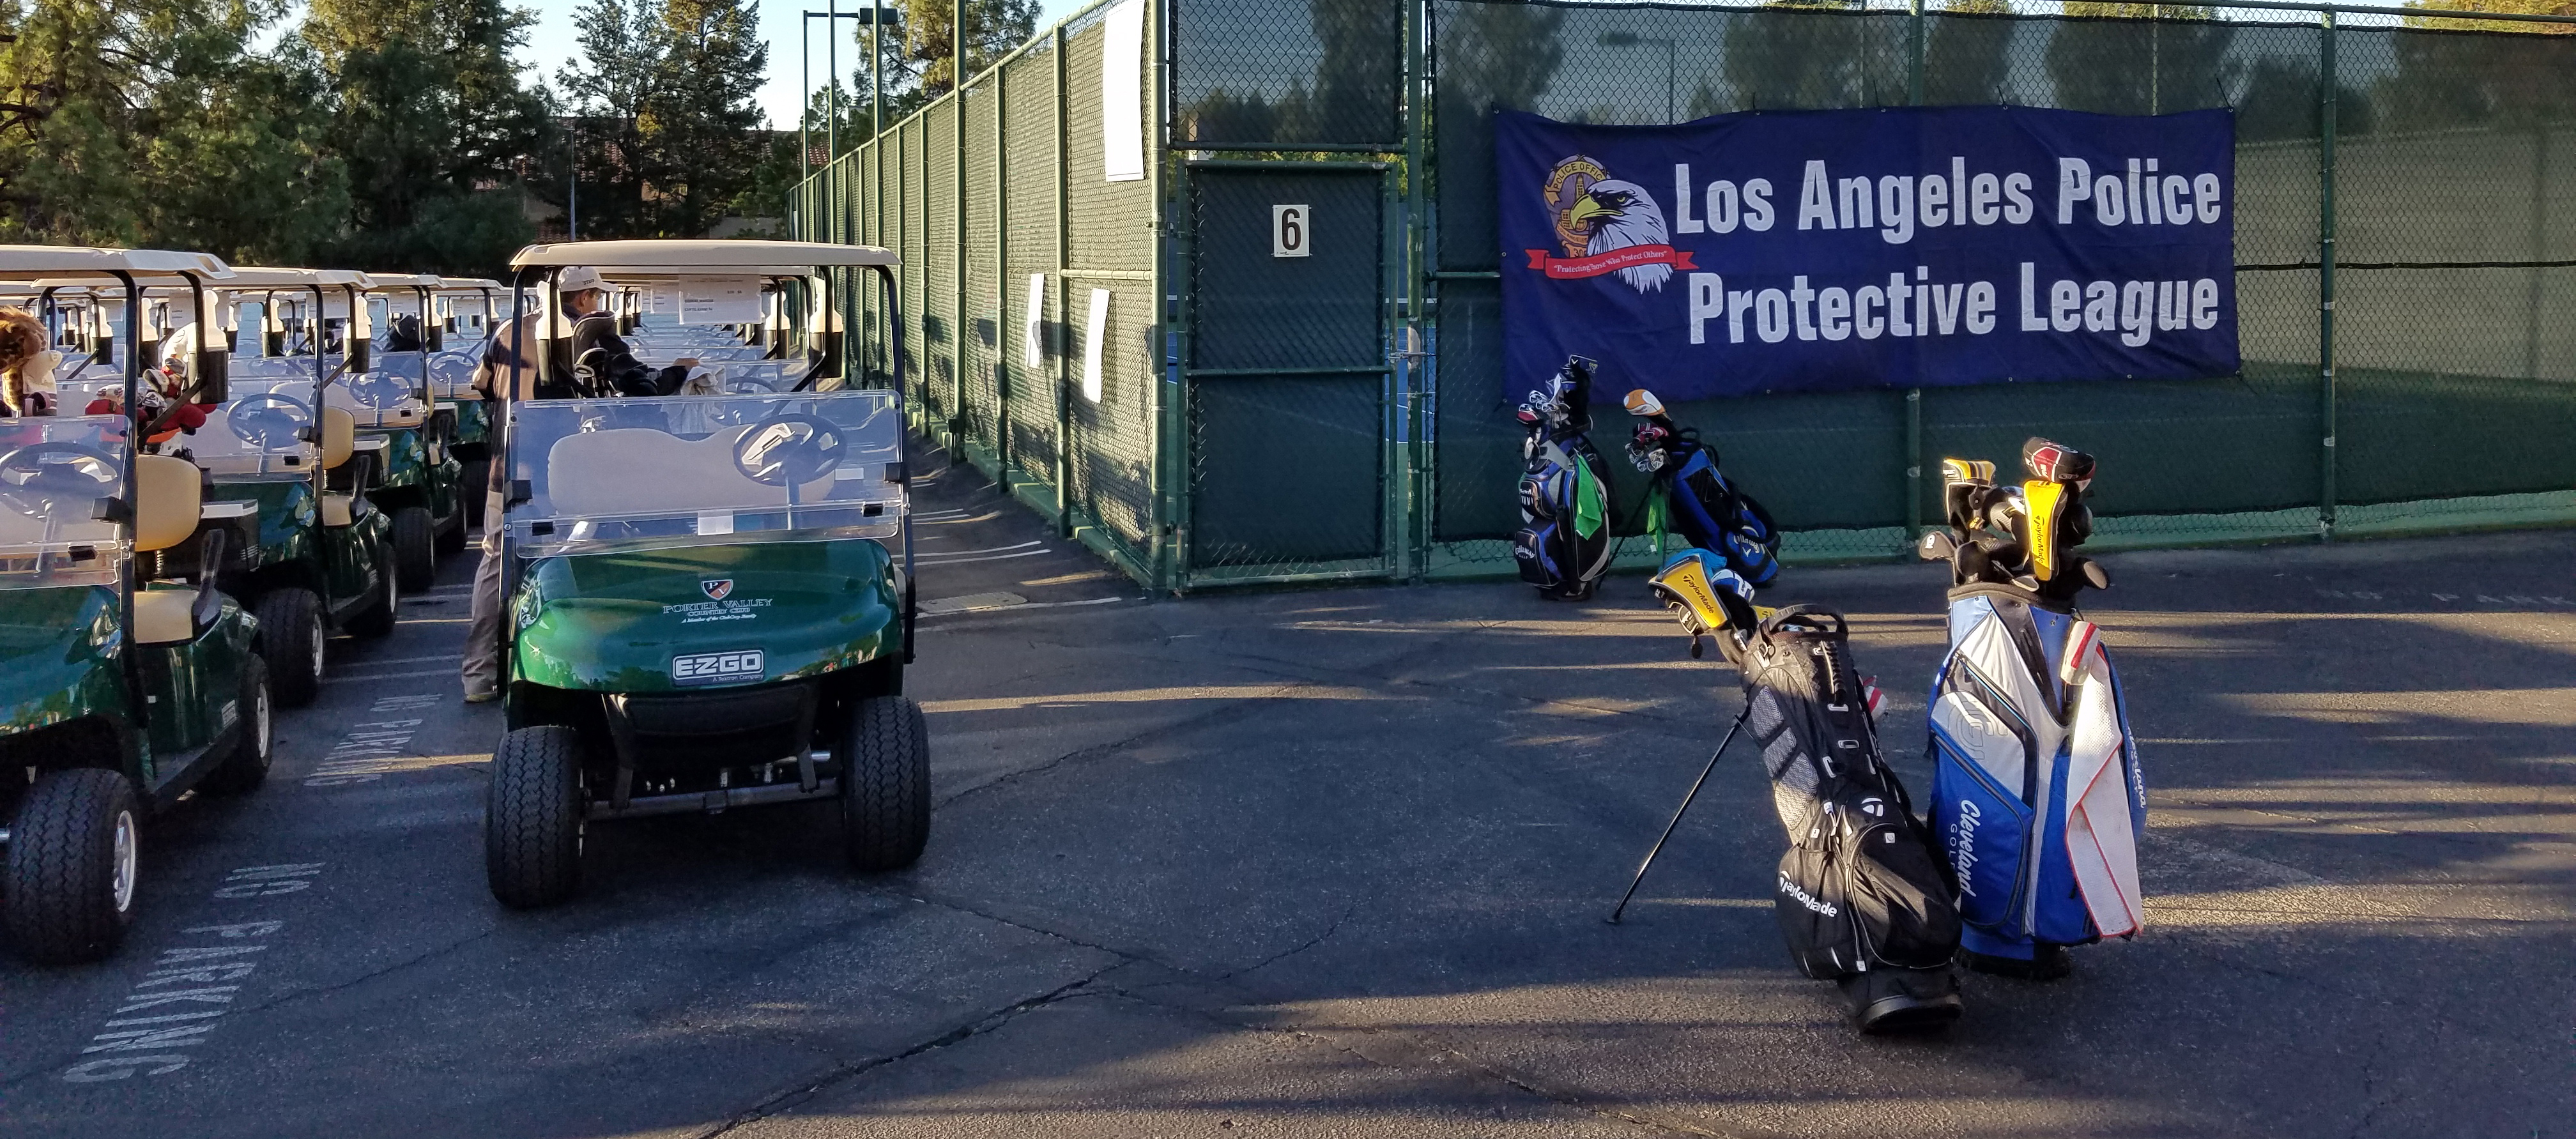 Upcoming Events LAPPL Los Angeles Police Protective League - Elysian park car show 2018